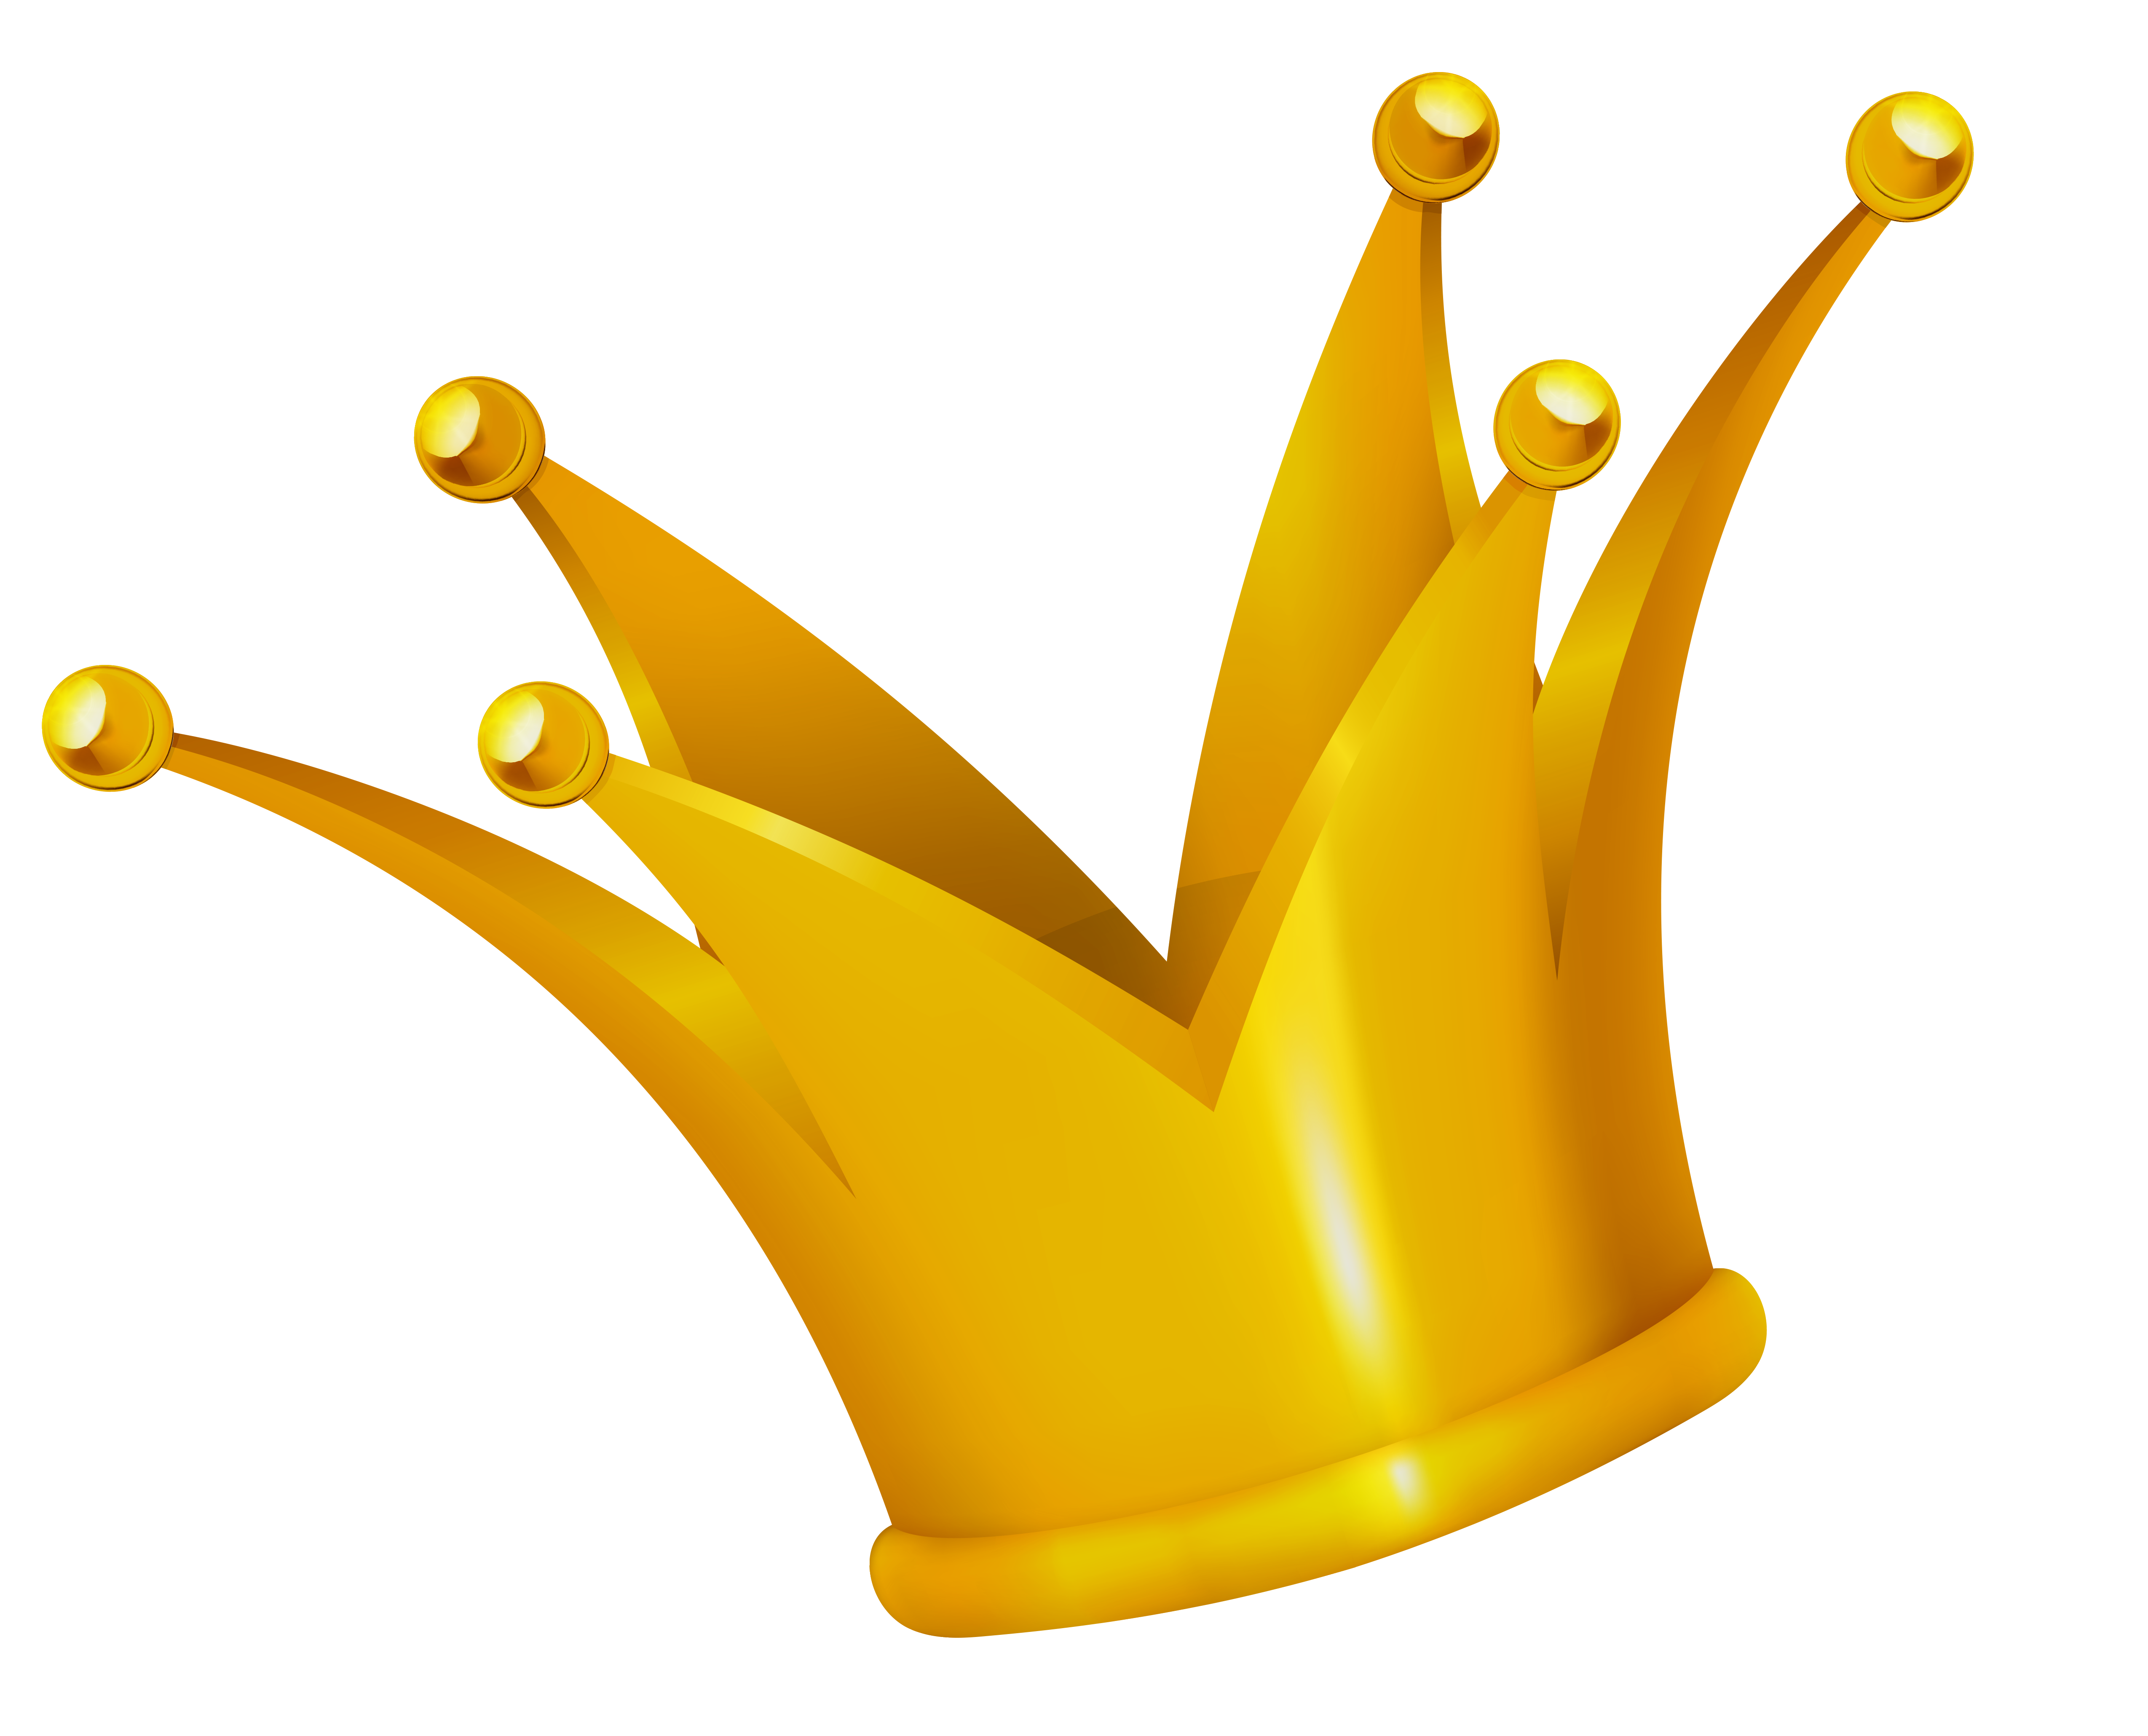 Crown clipart clipart royalty free library Gold crown clipart no background - ClipartFest clipart royalty free library